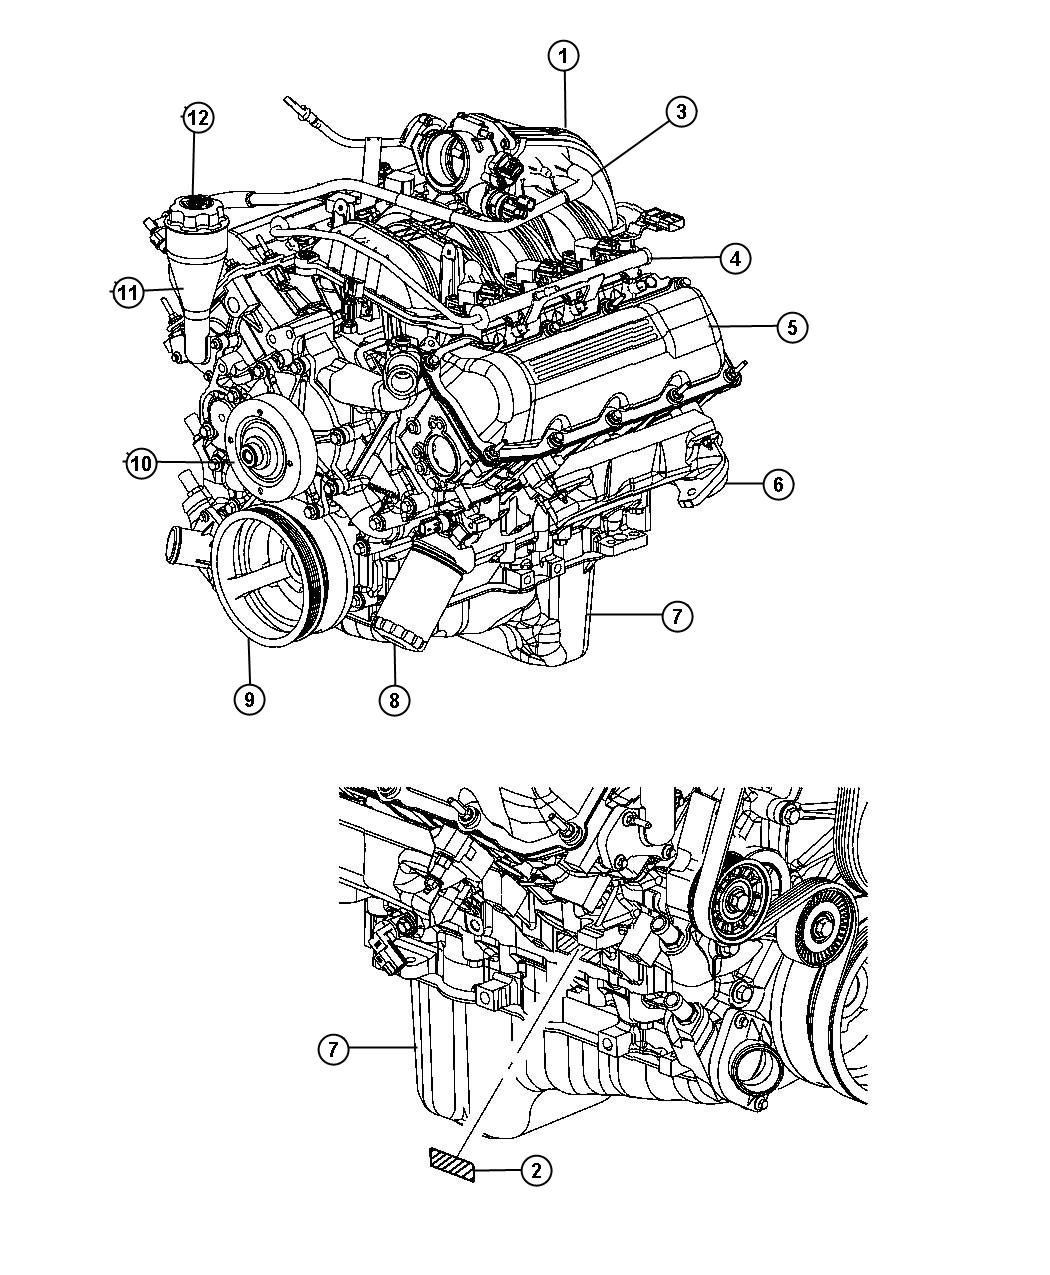 Jeep Liberty Valve Cover Parts Diagram. Jeep. Auto Wiring